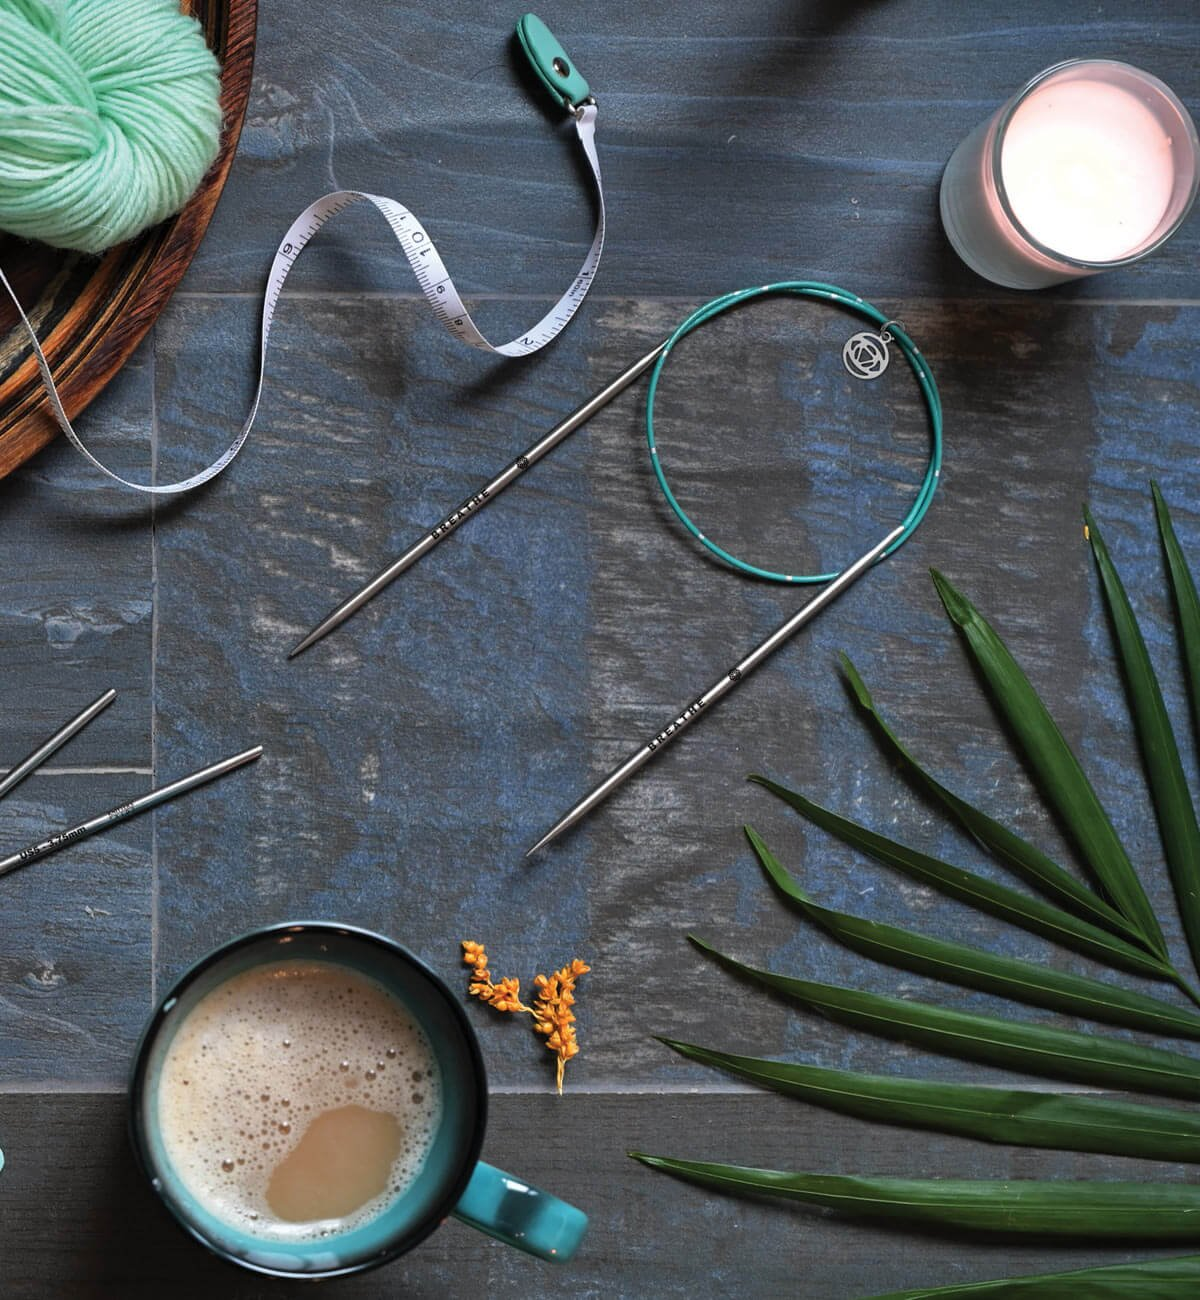 Mindful - 16 Lace Fixed Circular Needles